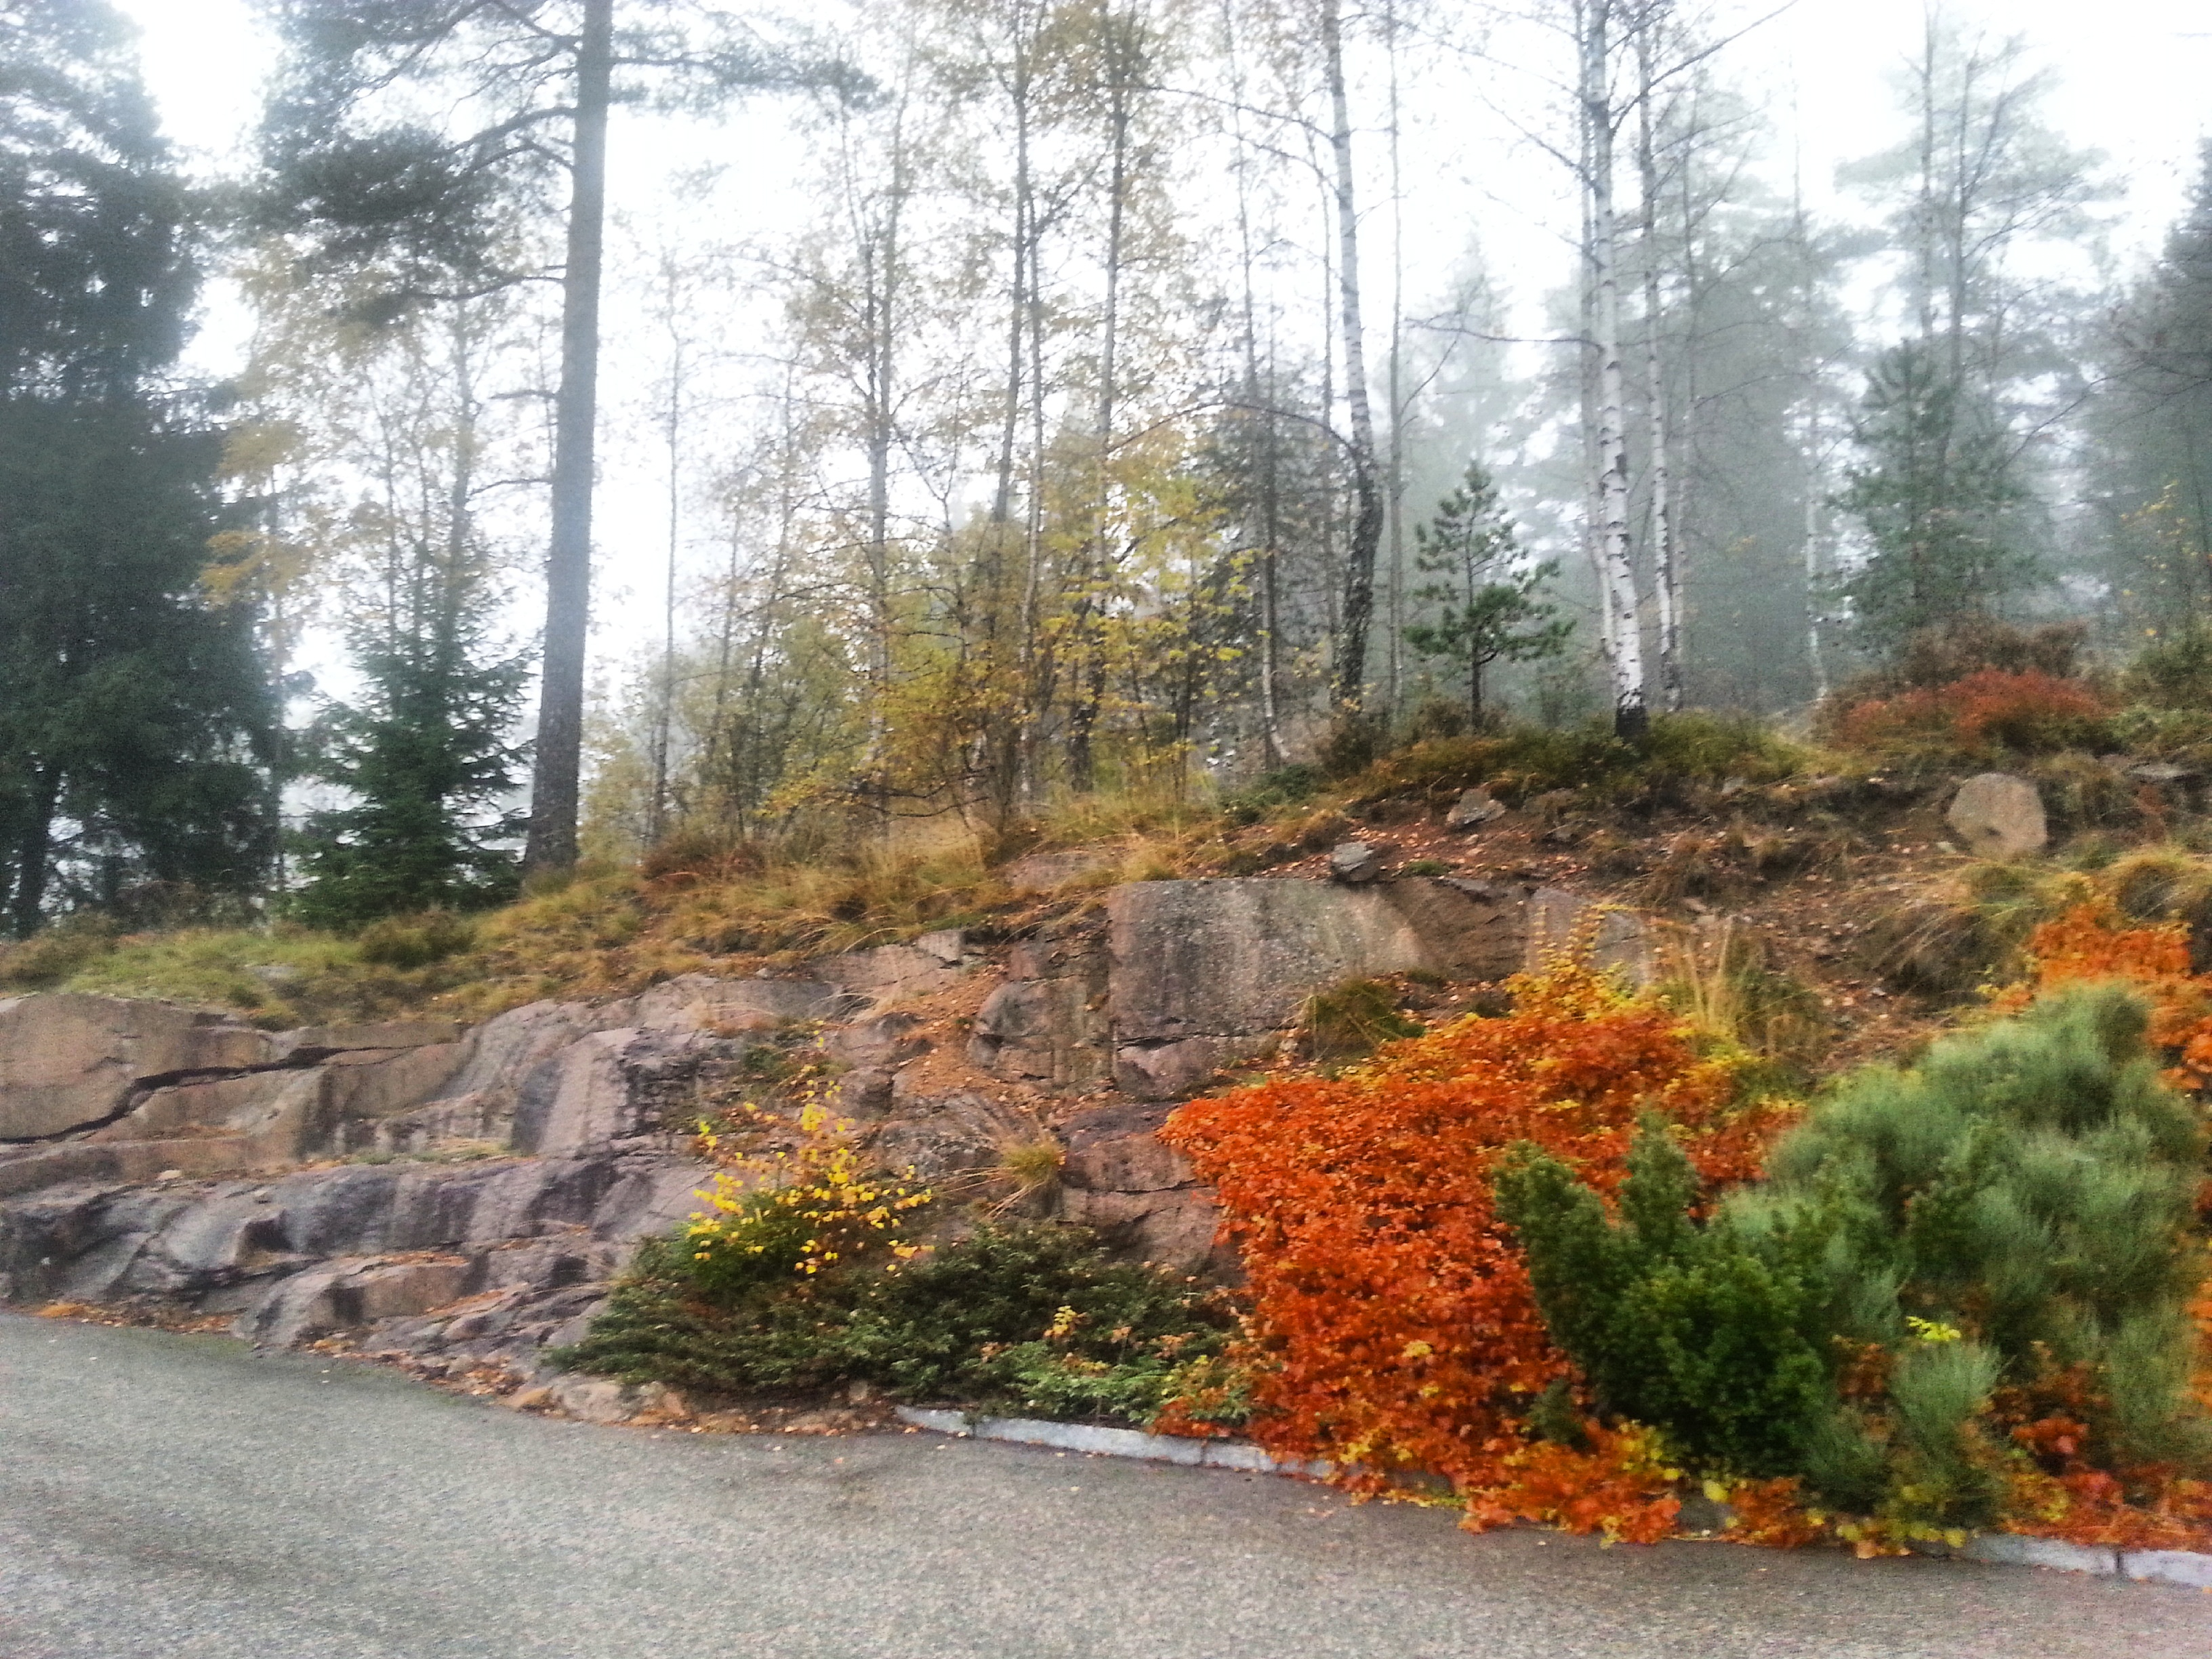 Oslo, Norway - fall colors